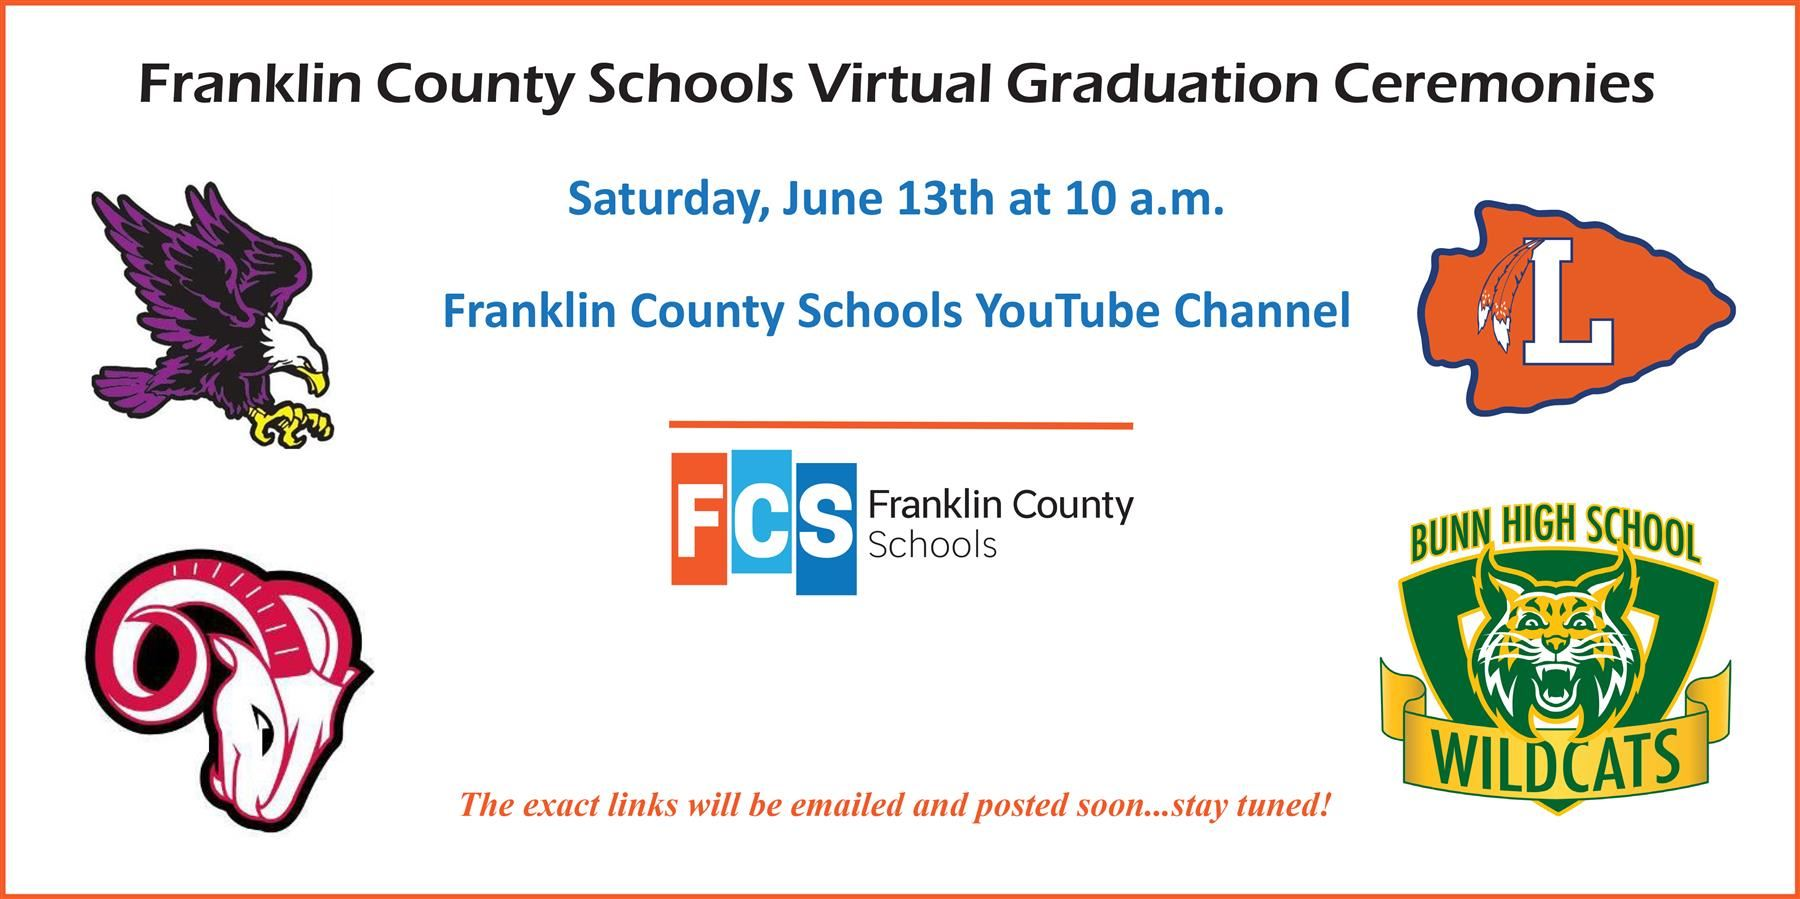 FCS Virtual Graduation Ceremonies